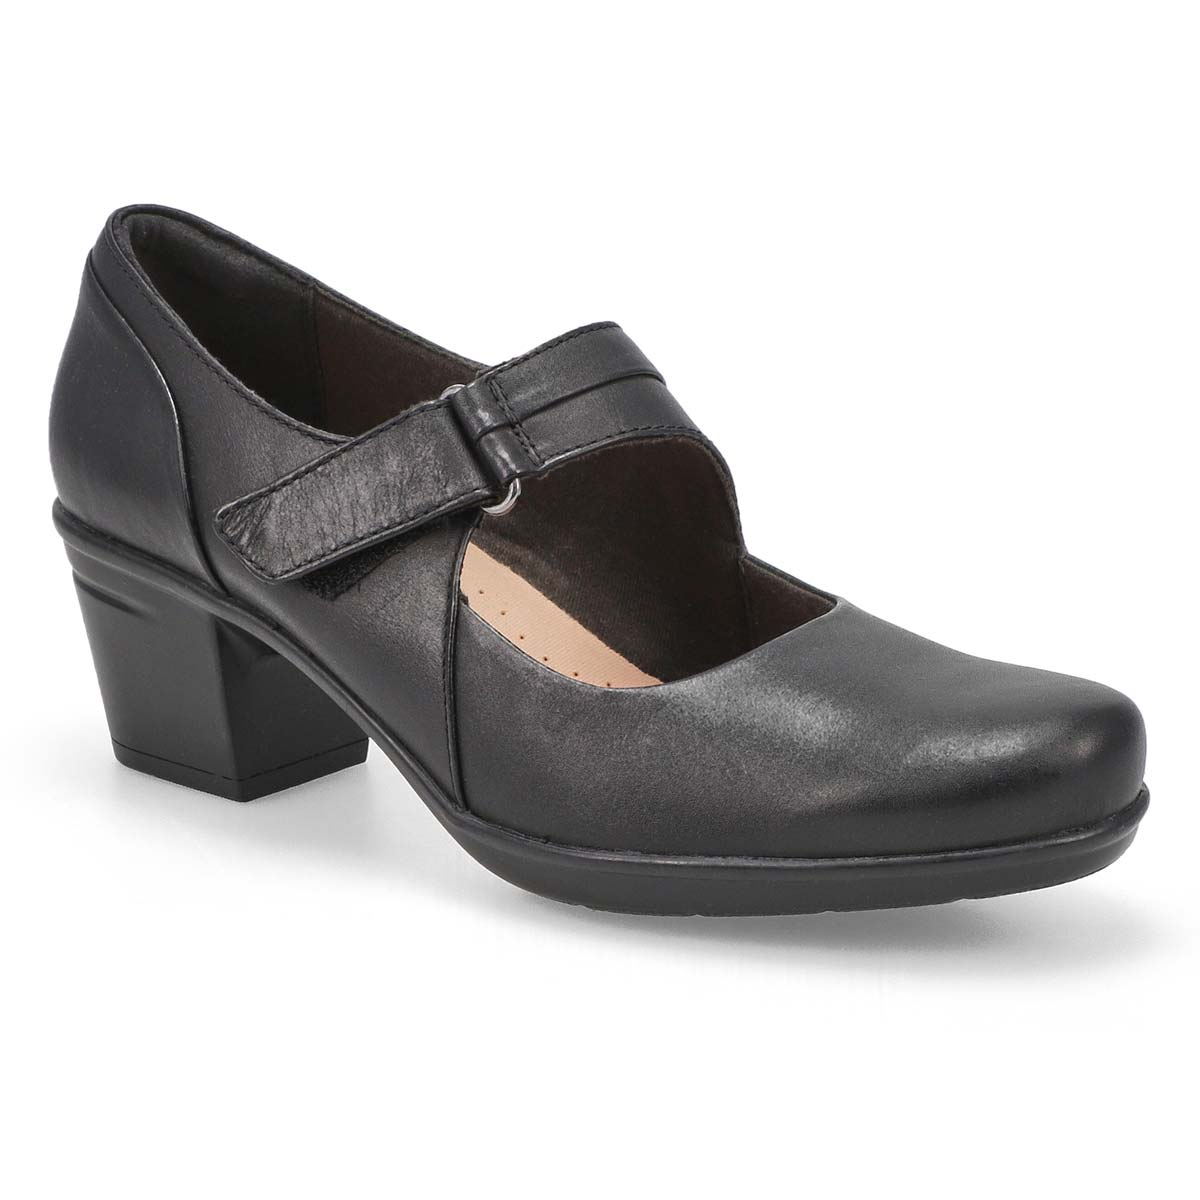 Lds Emslie Lulin black dress heel